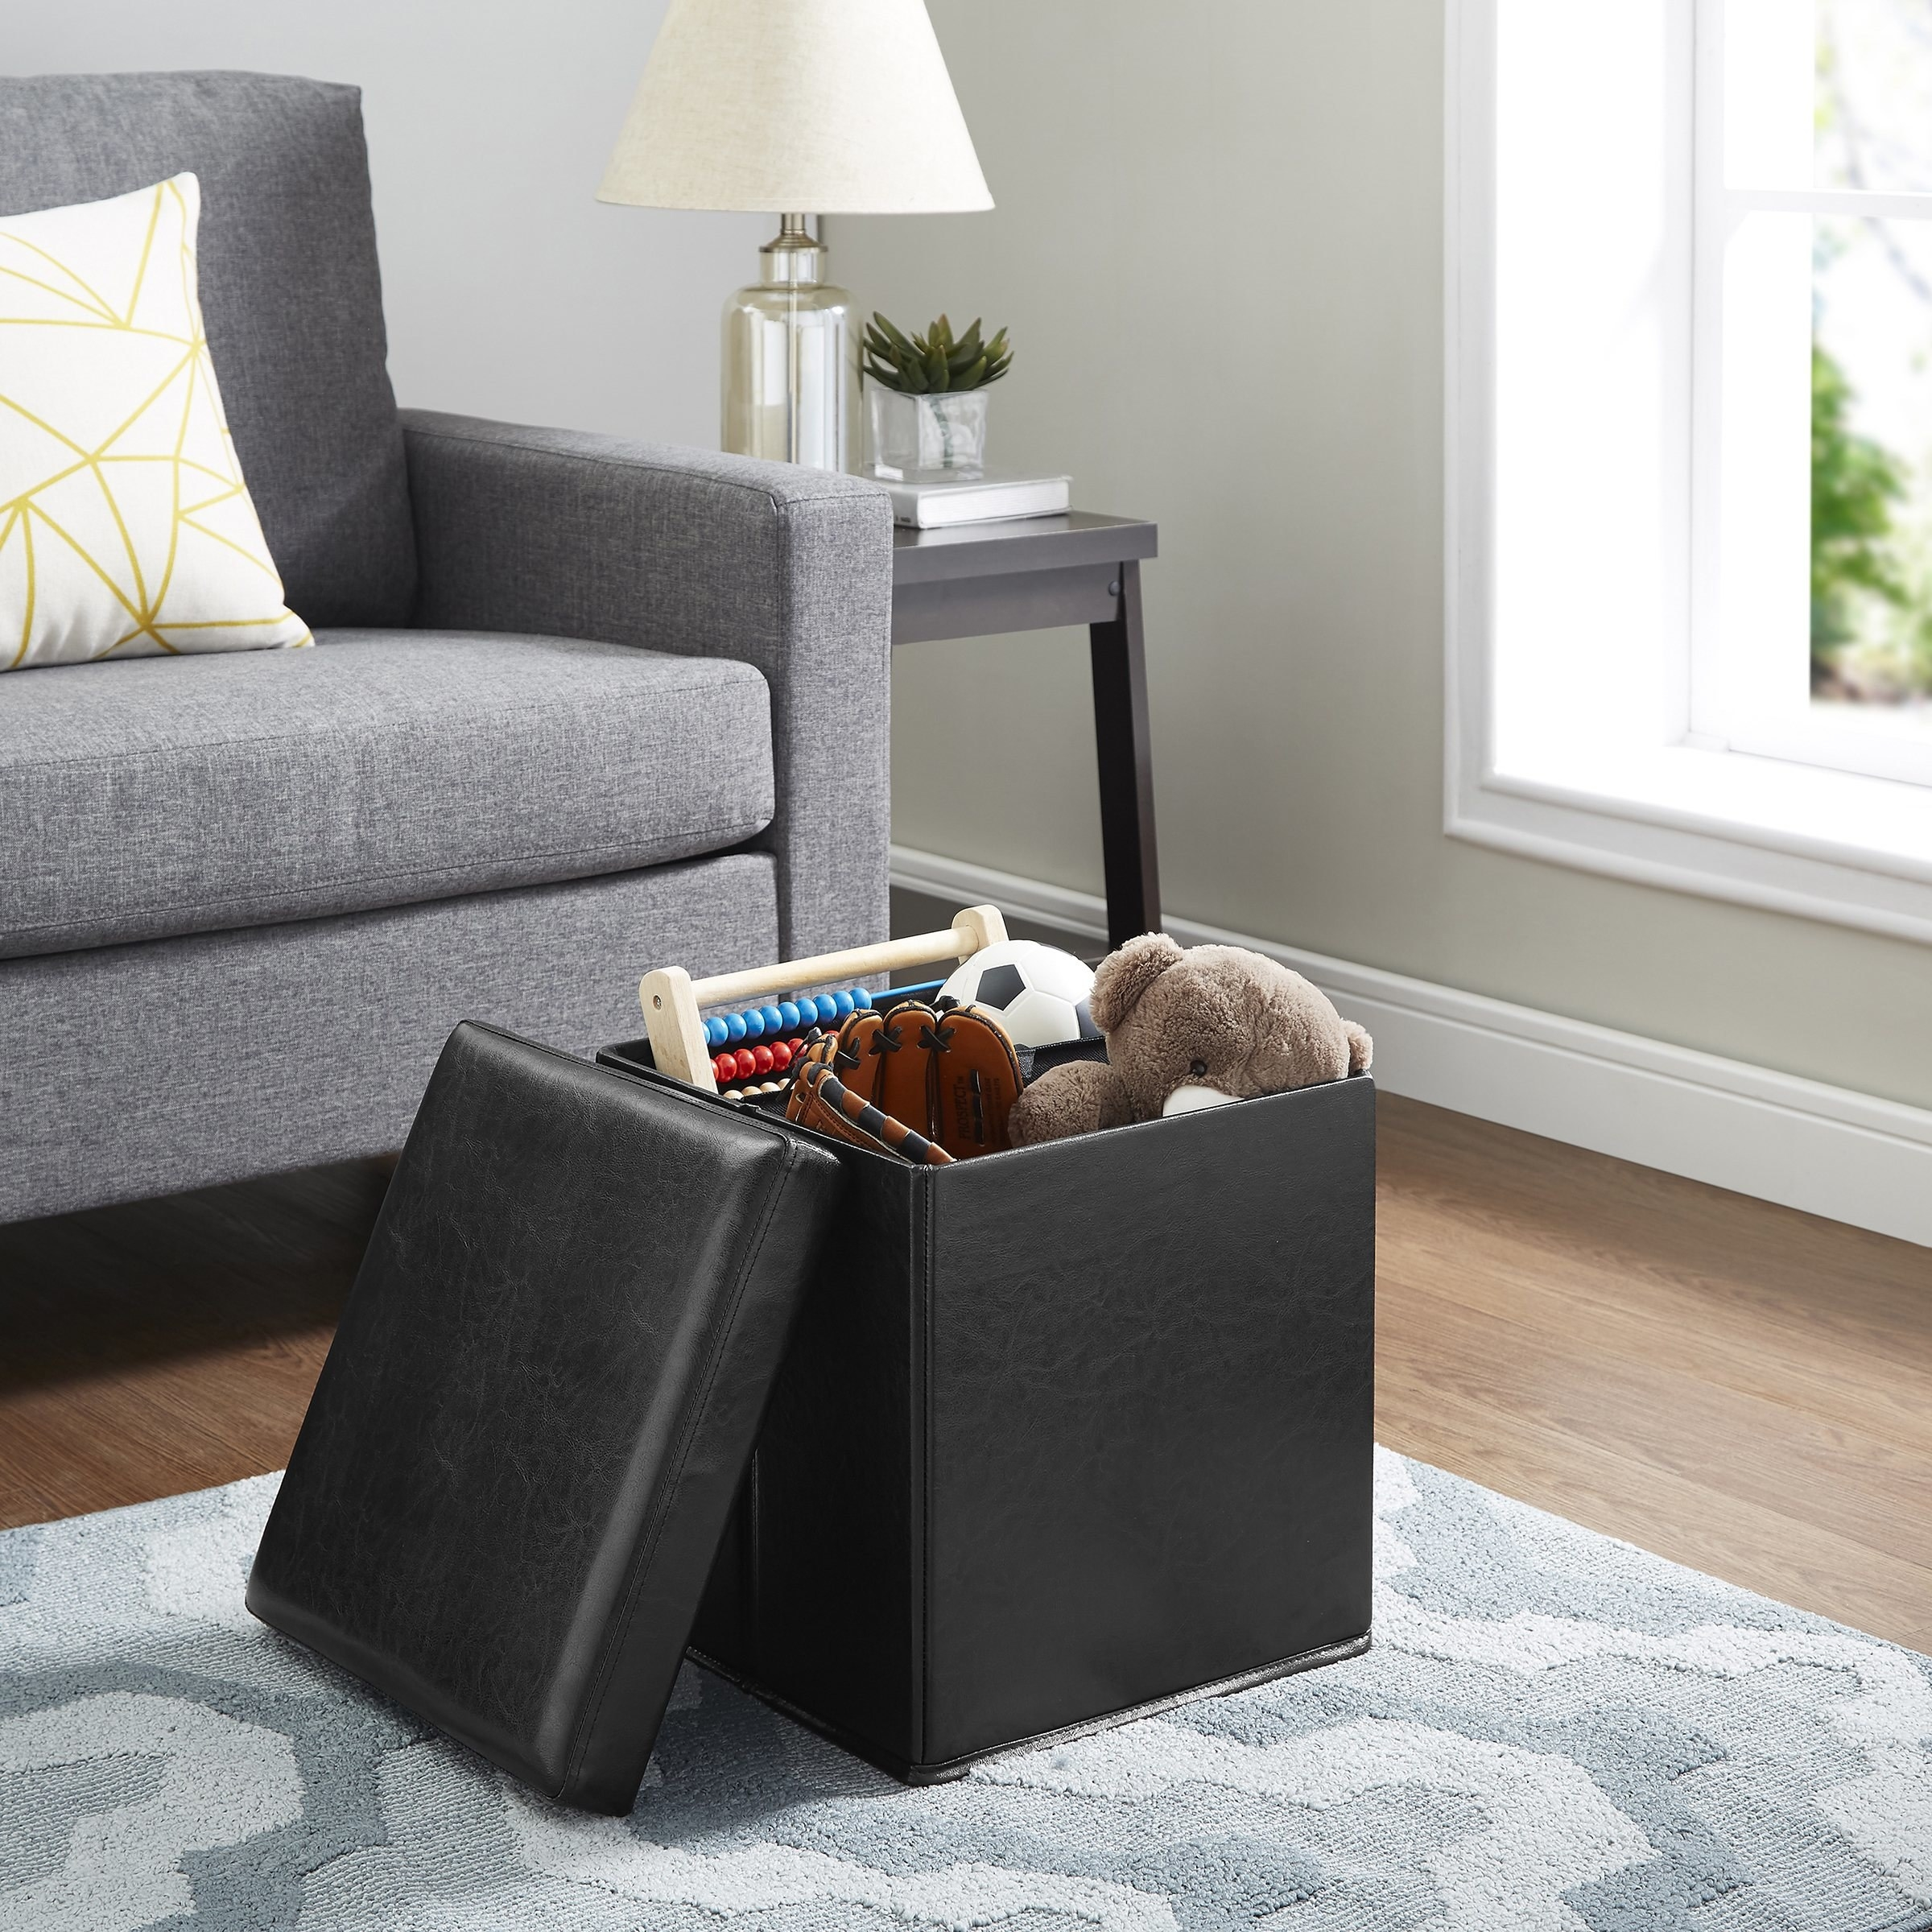 Theultra-collapsible faux leather storage ottoman